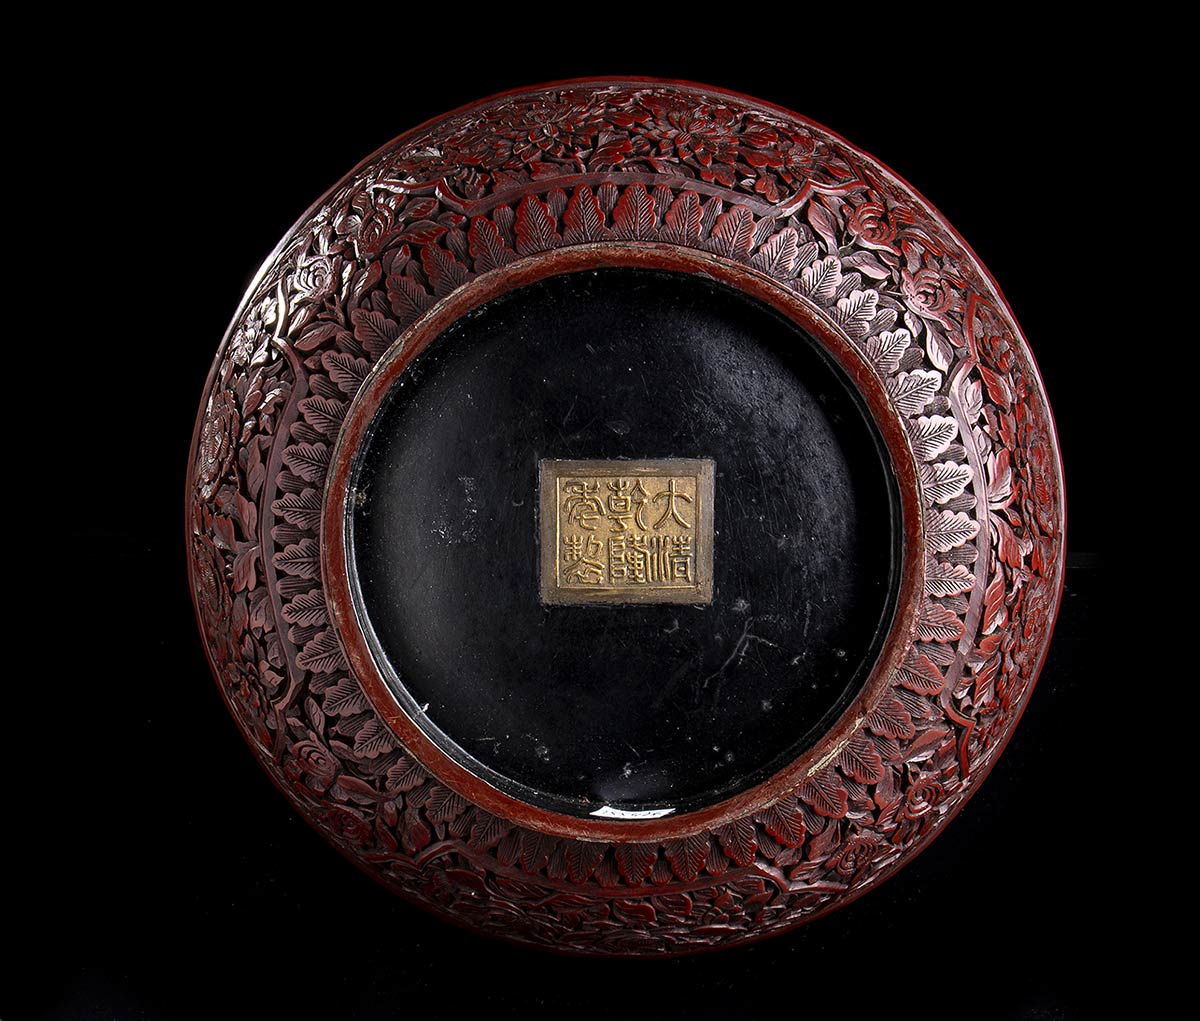 A CARVED RED LACQUER CIRCULAR BOX AND COVERChina, 19th-20th century - Image 3 of 4